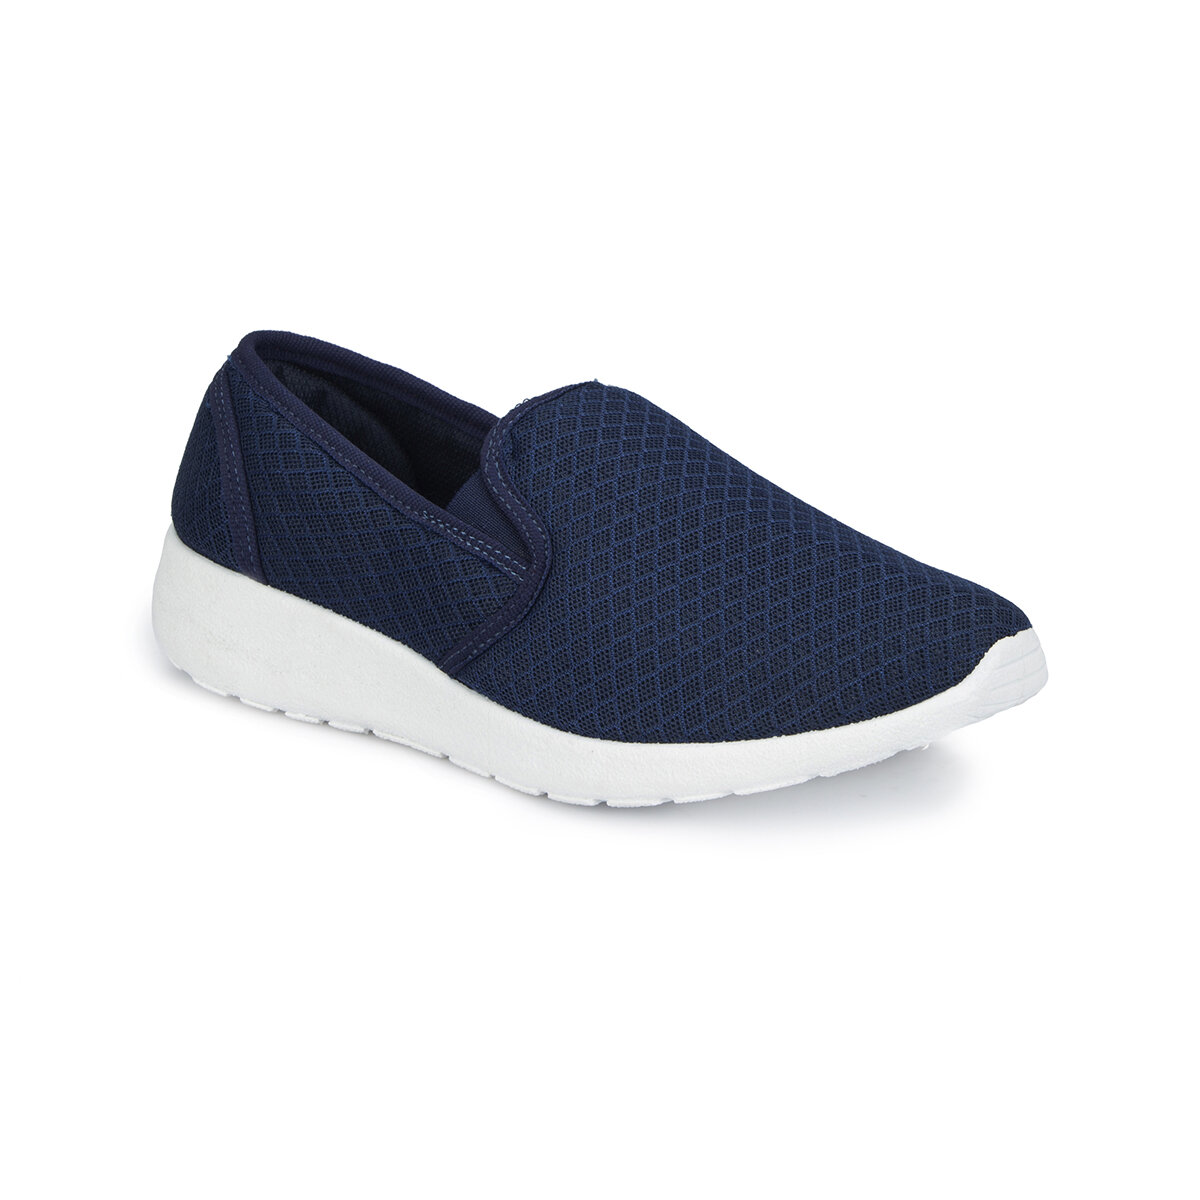 FLO 81.354969.Z Navy Blue Women 'S Sports Shoes Polaris